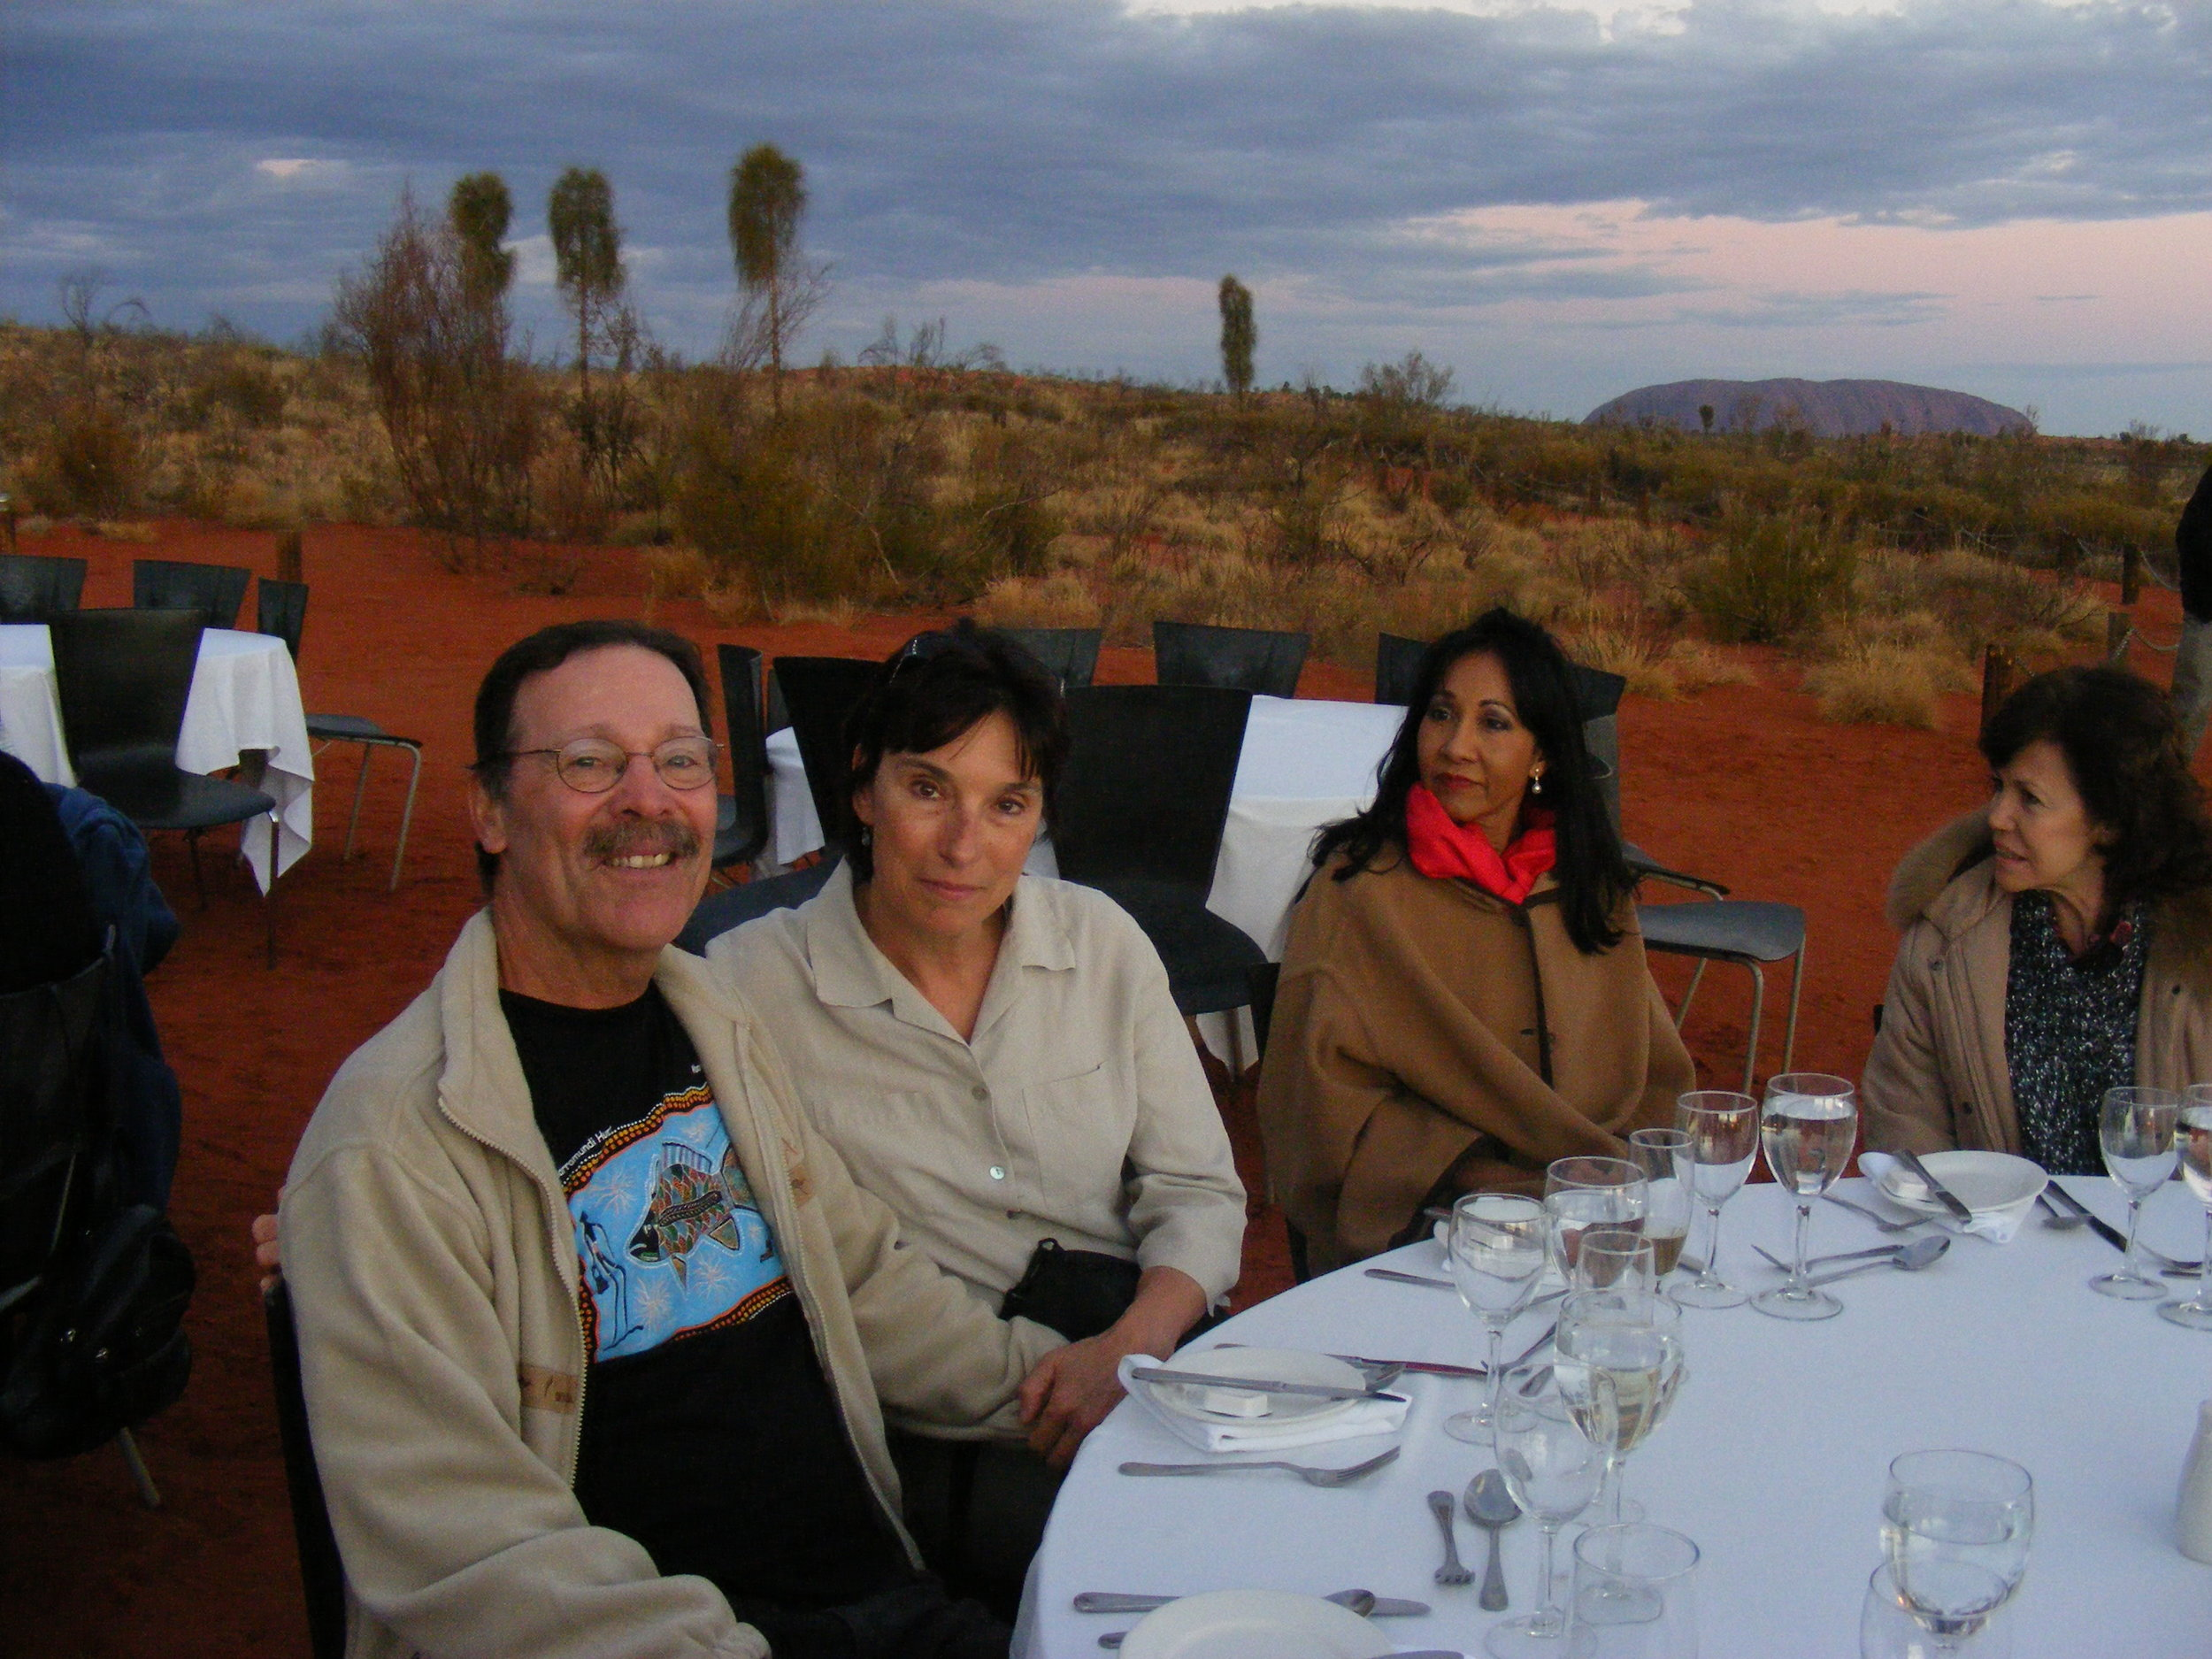 As good as it gets, wine, emu, crocodile, grubs, and a host of local fare.